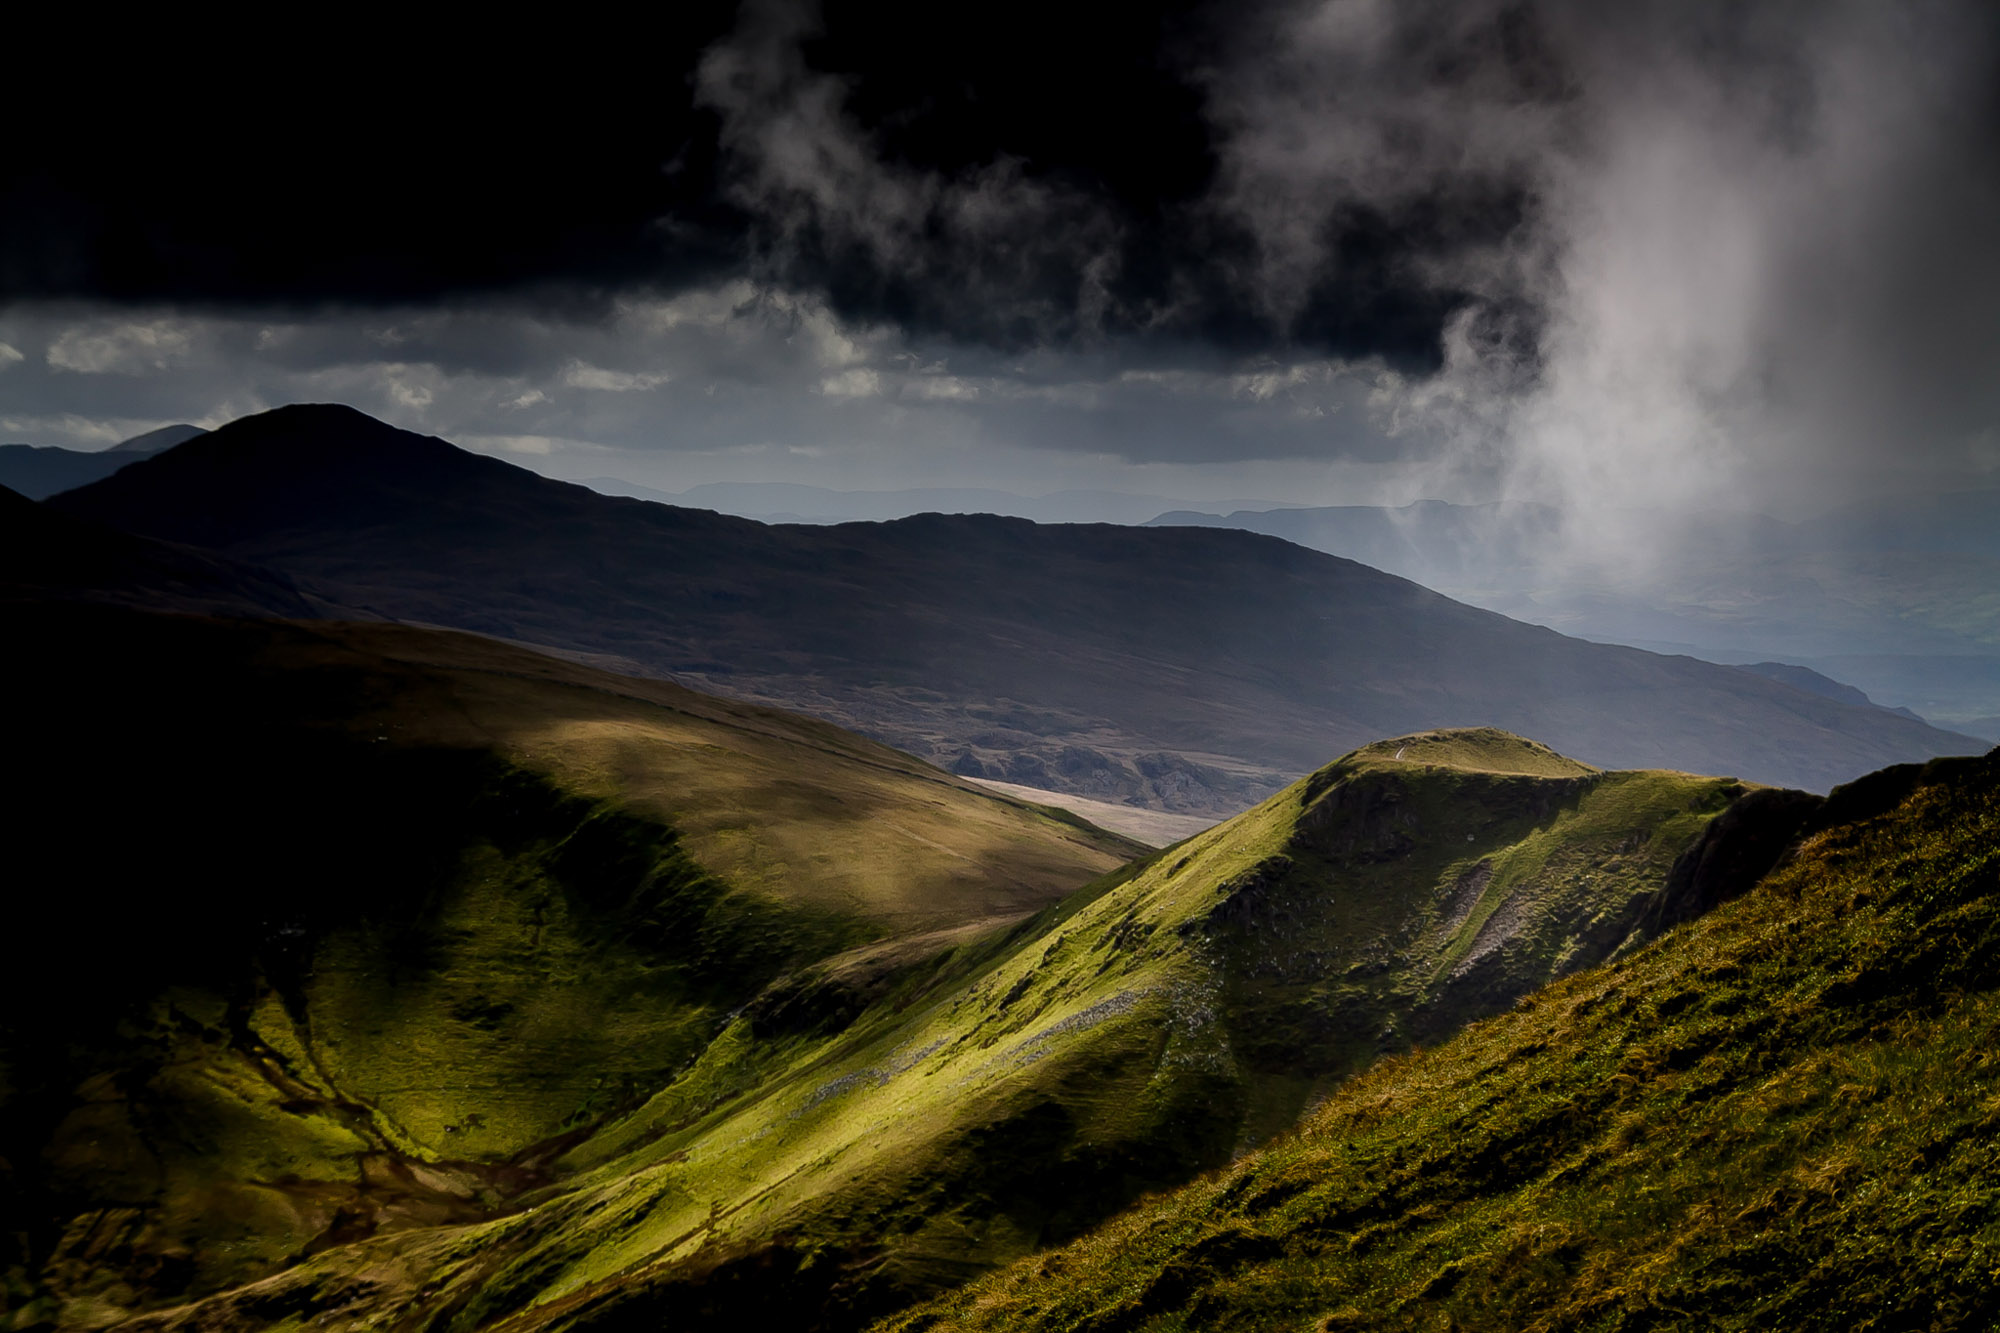 Foel Gron in Snowdonia, basked in afternoon sunlight